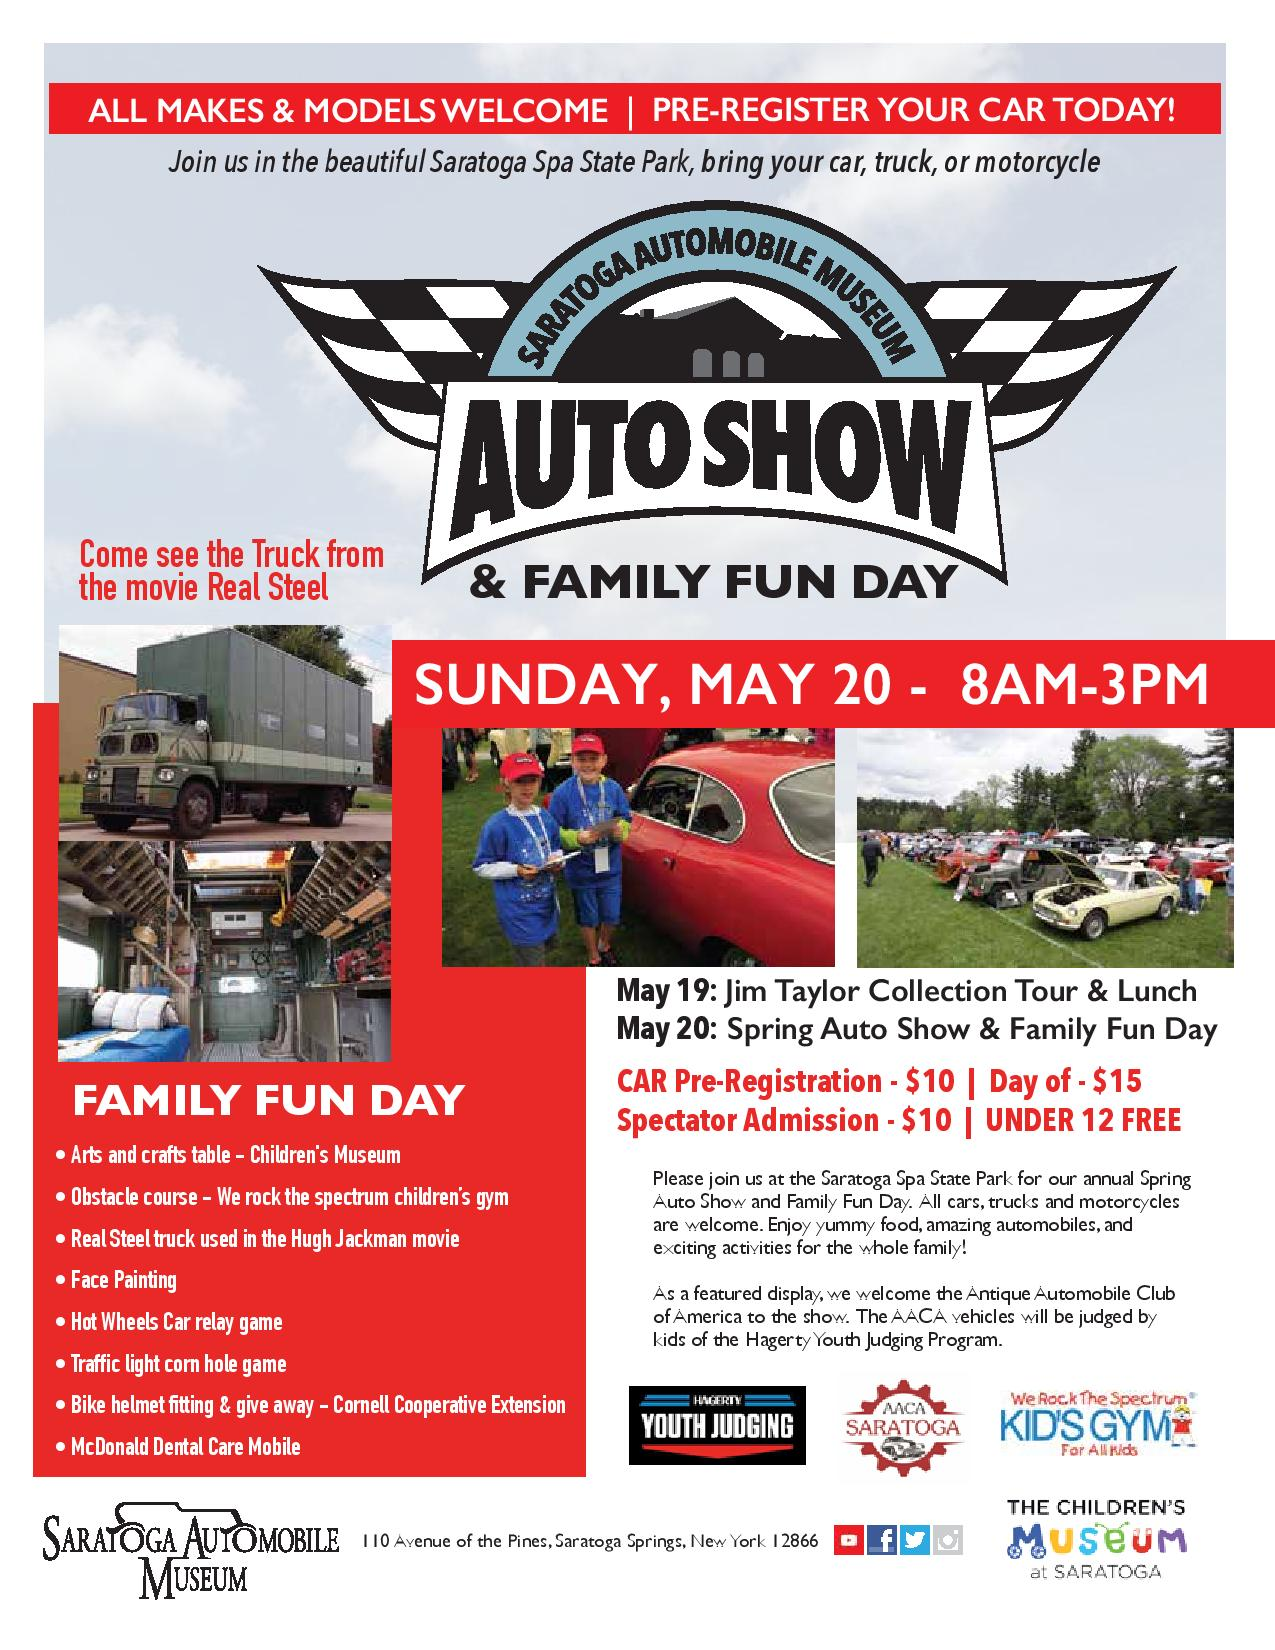 final autoshow flyer 2018-page-001.jpg